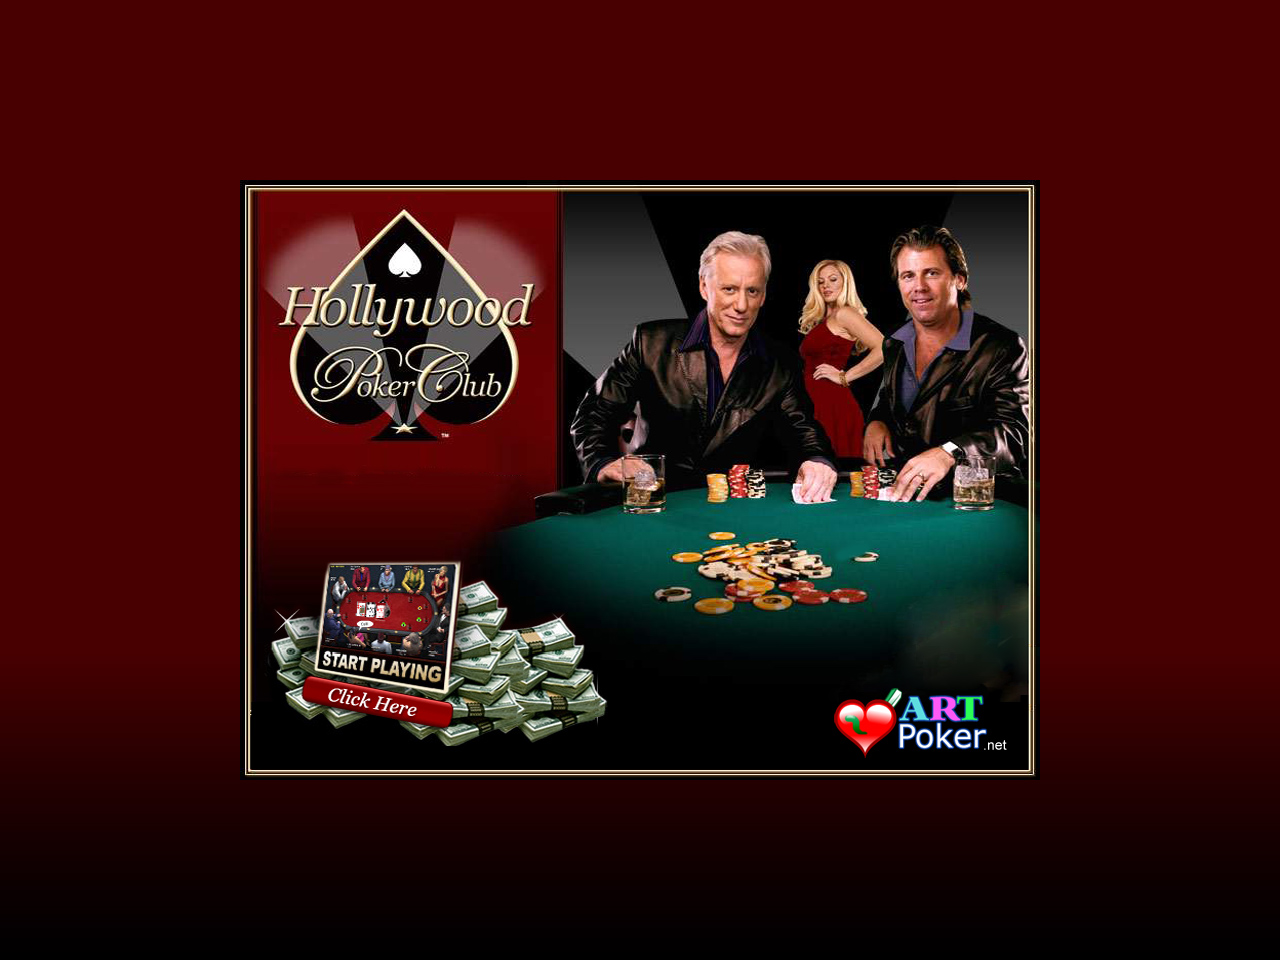 1280x960_HollywoodPoker